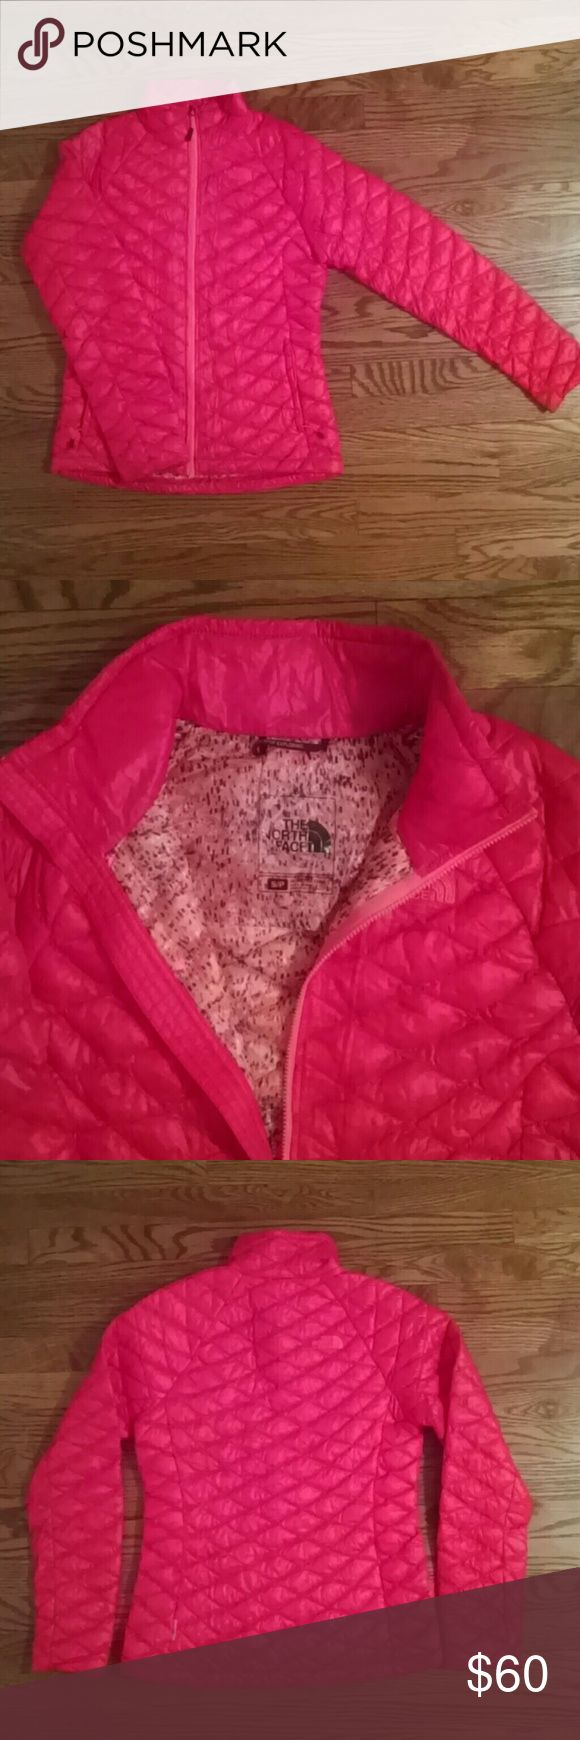 NWOT North Face Thermoball Jacket The color is poorly translated here - the jacket is a bright reddish-orange with a speckled lining.  I simply own too many jackets and am a recovering shopaholic!  No trades Reasonable offers considered North Face Jackets & Coats